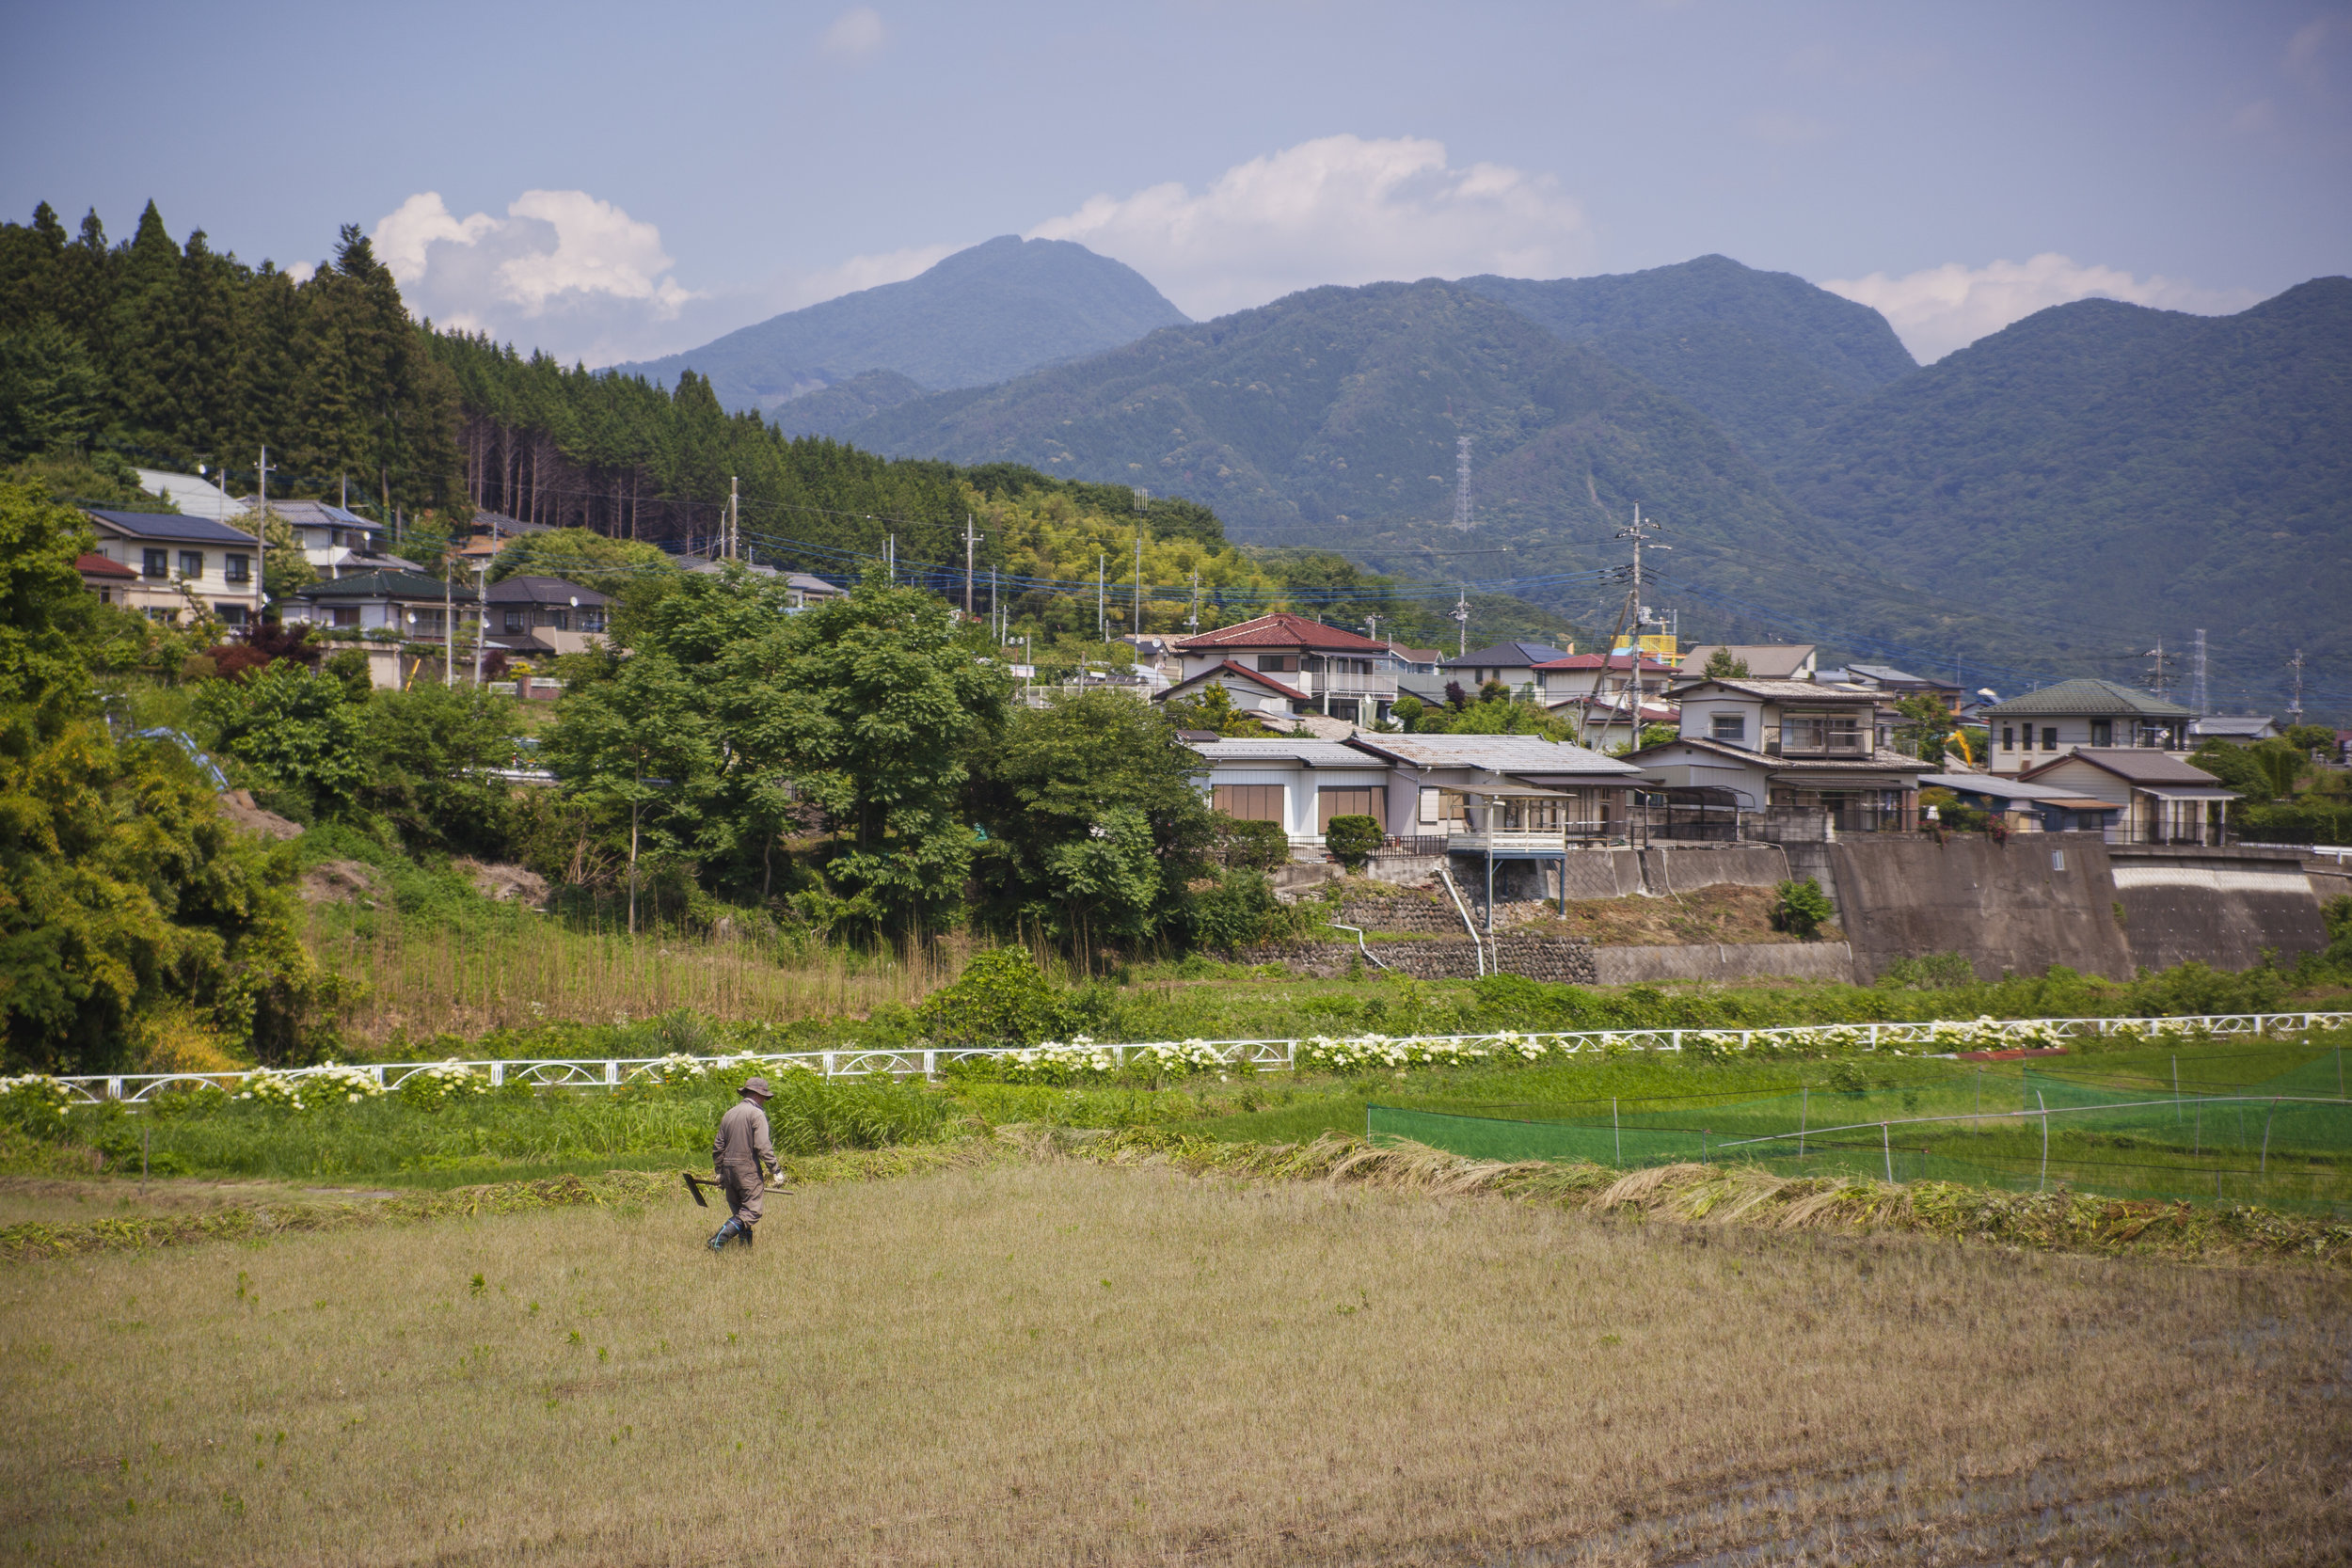 Farms, houses, and mountains in Nakanojo, Japan